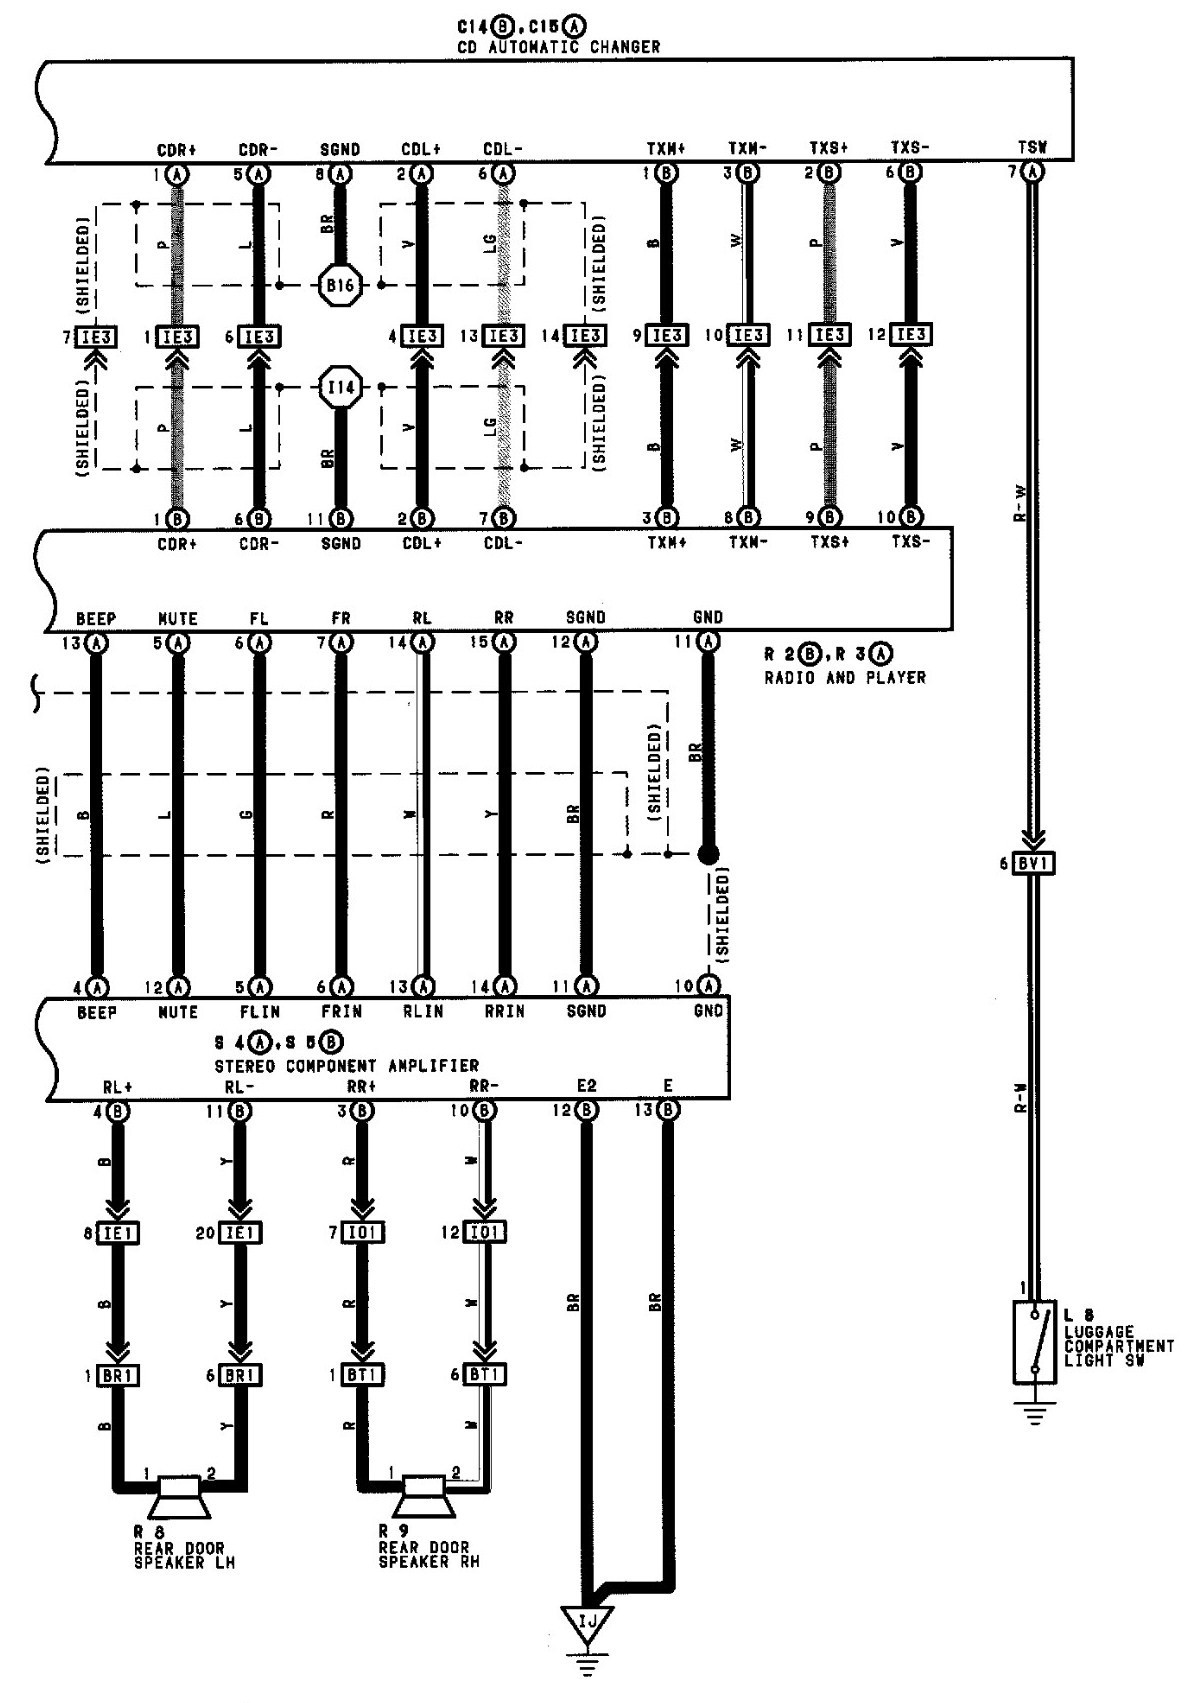 1998 Camry Fuse Diagram Wiring Library